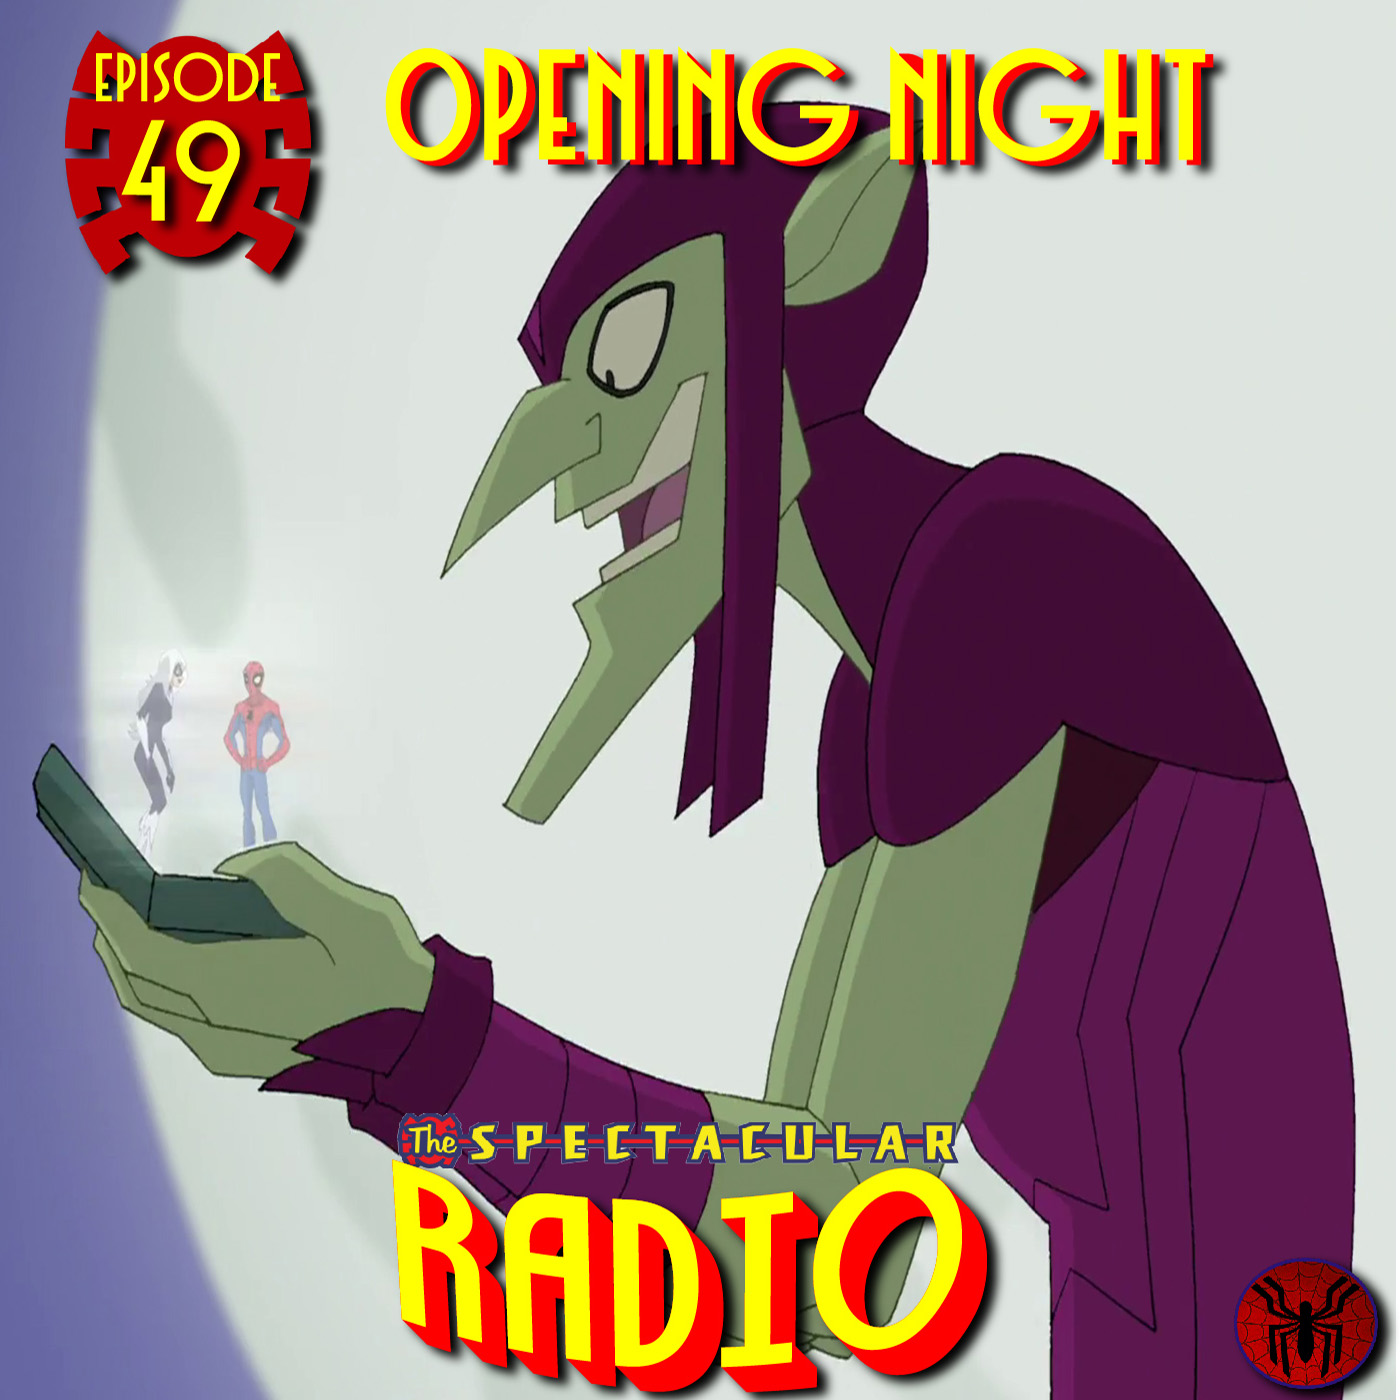 """Spectacular Radio Episode 49: """"Opening Night"""" With Greg Weisman and Jennifer L. Anderson"""